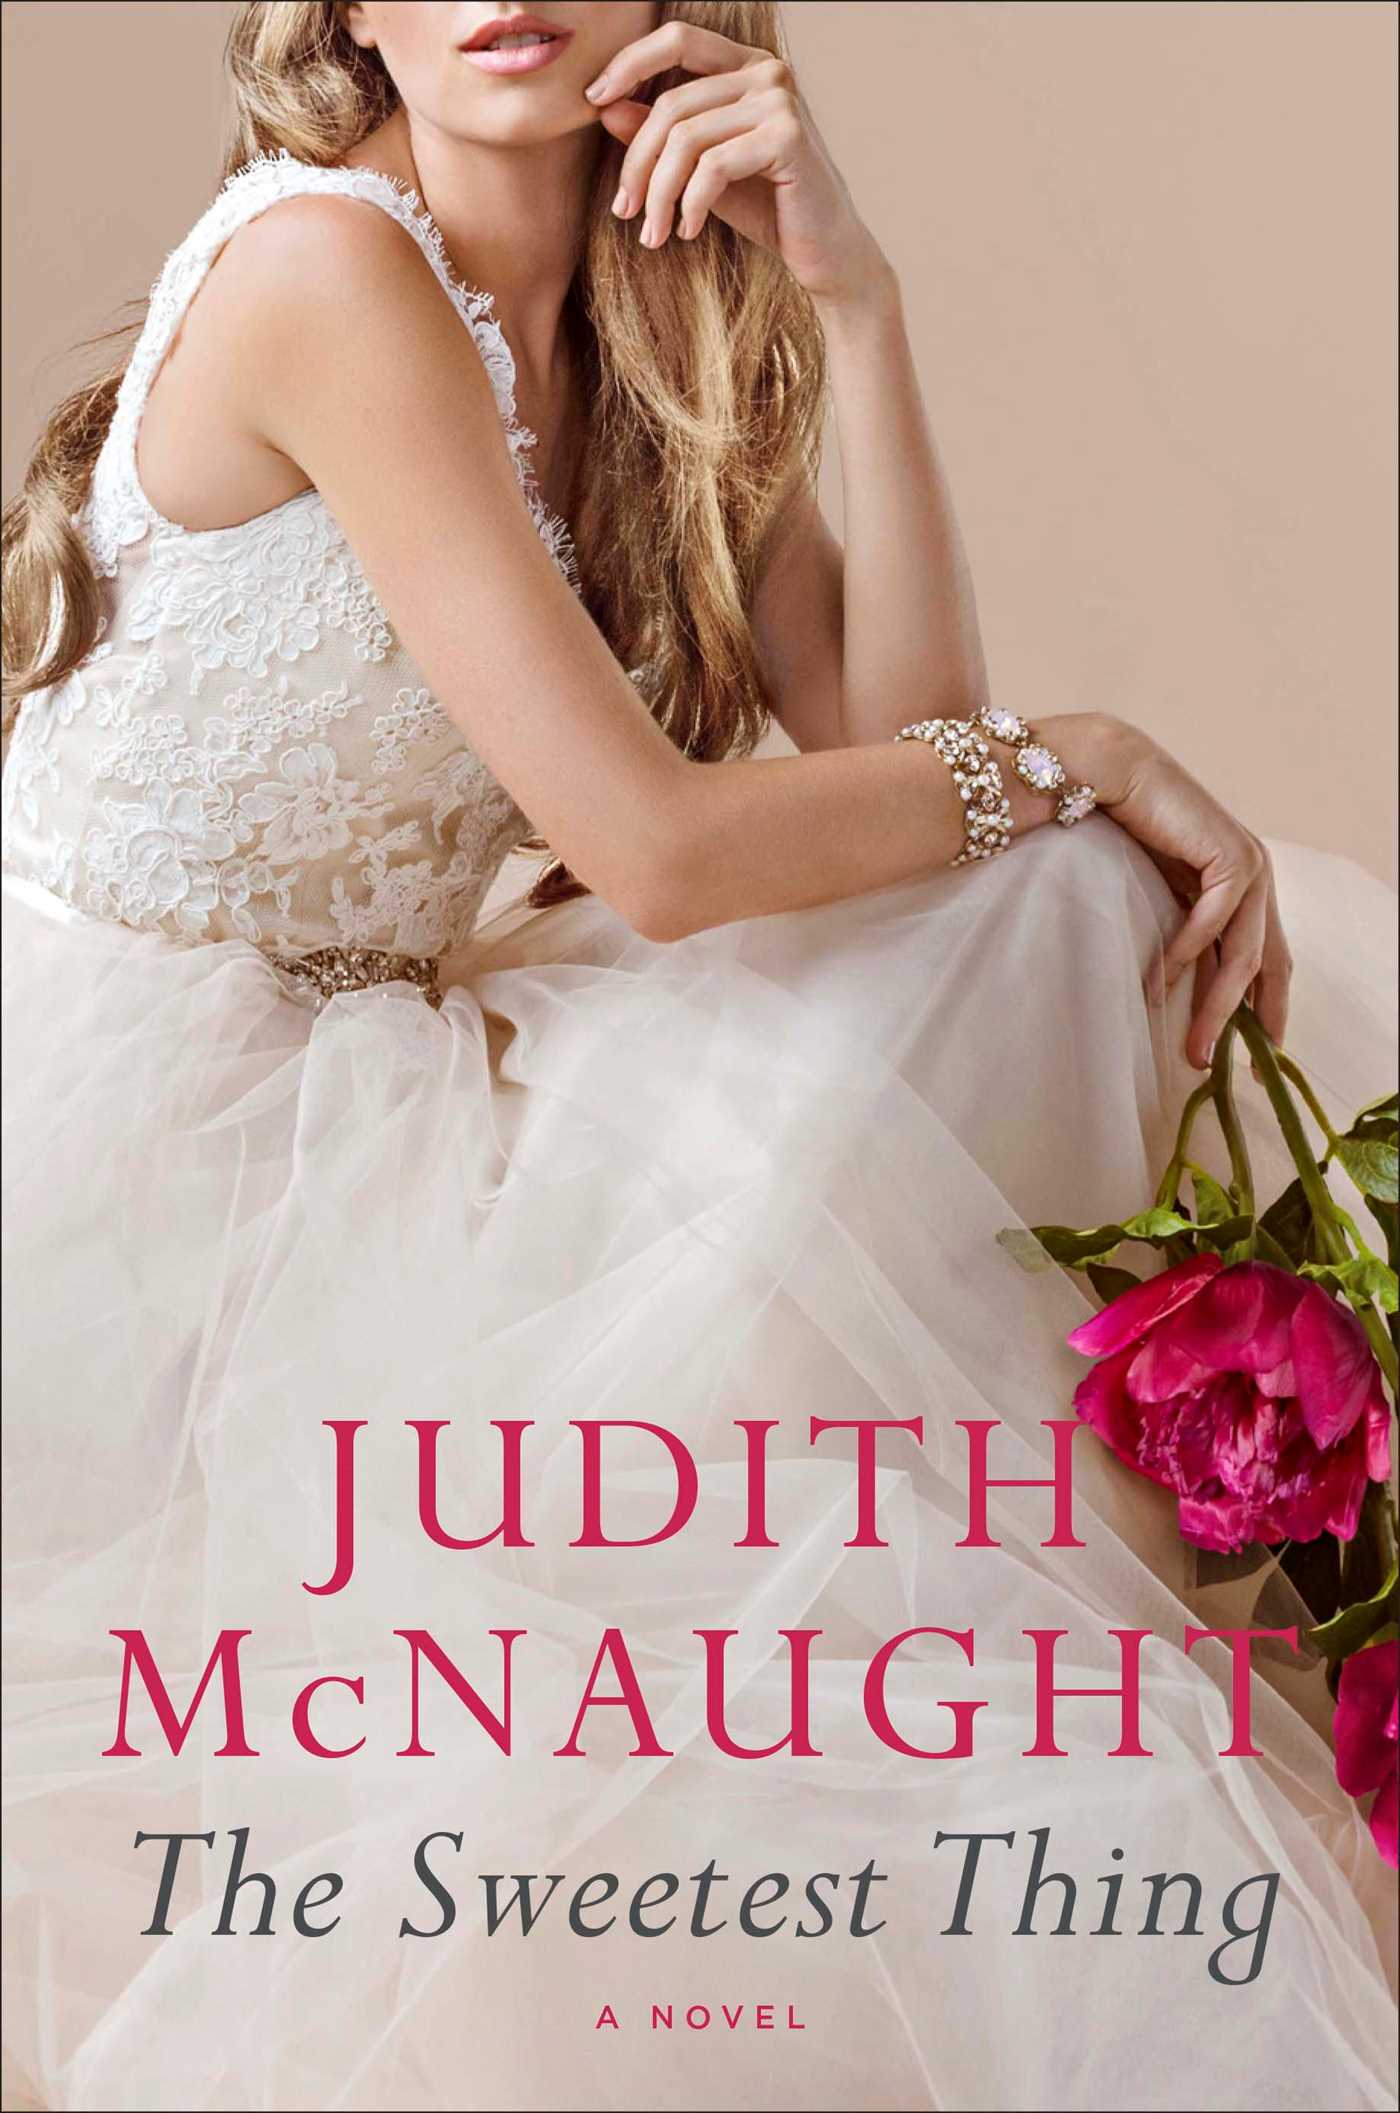 download paradise by judith mcnaught pdf